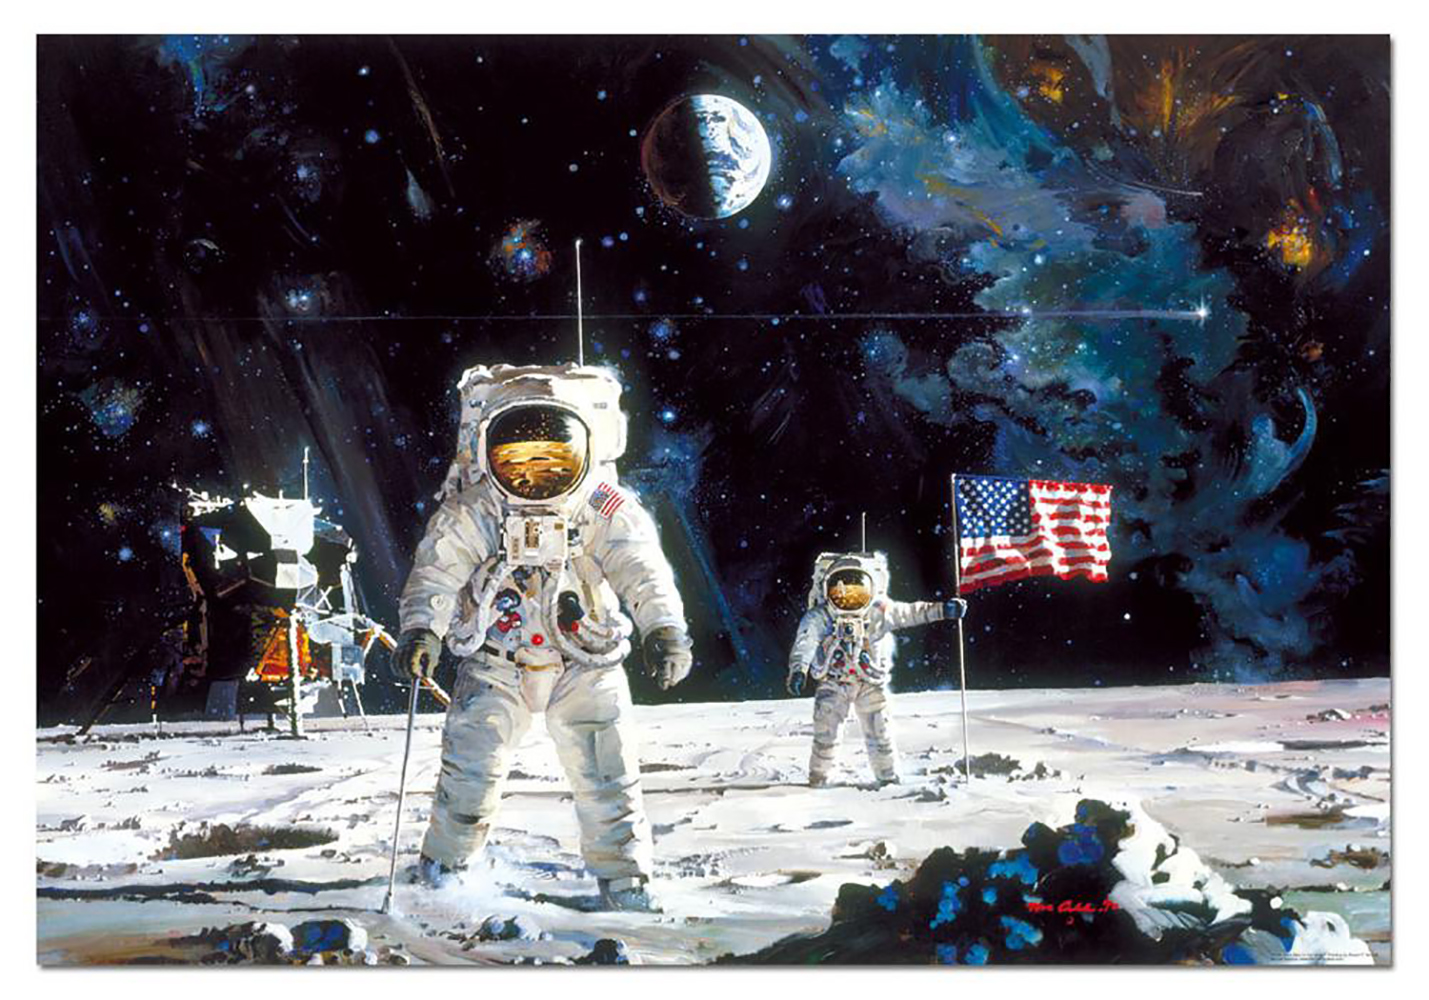 1000 pieces puzzle - First men on the moon, Robert McCall